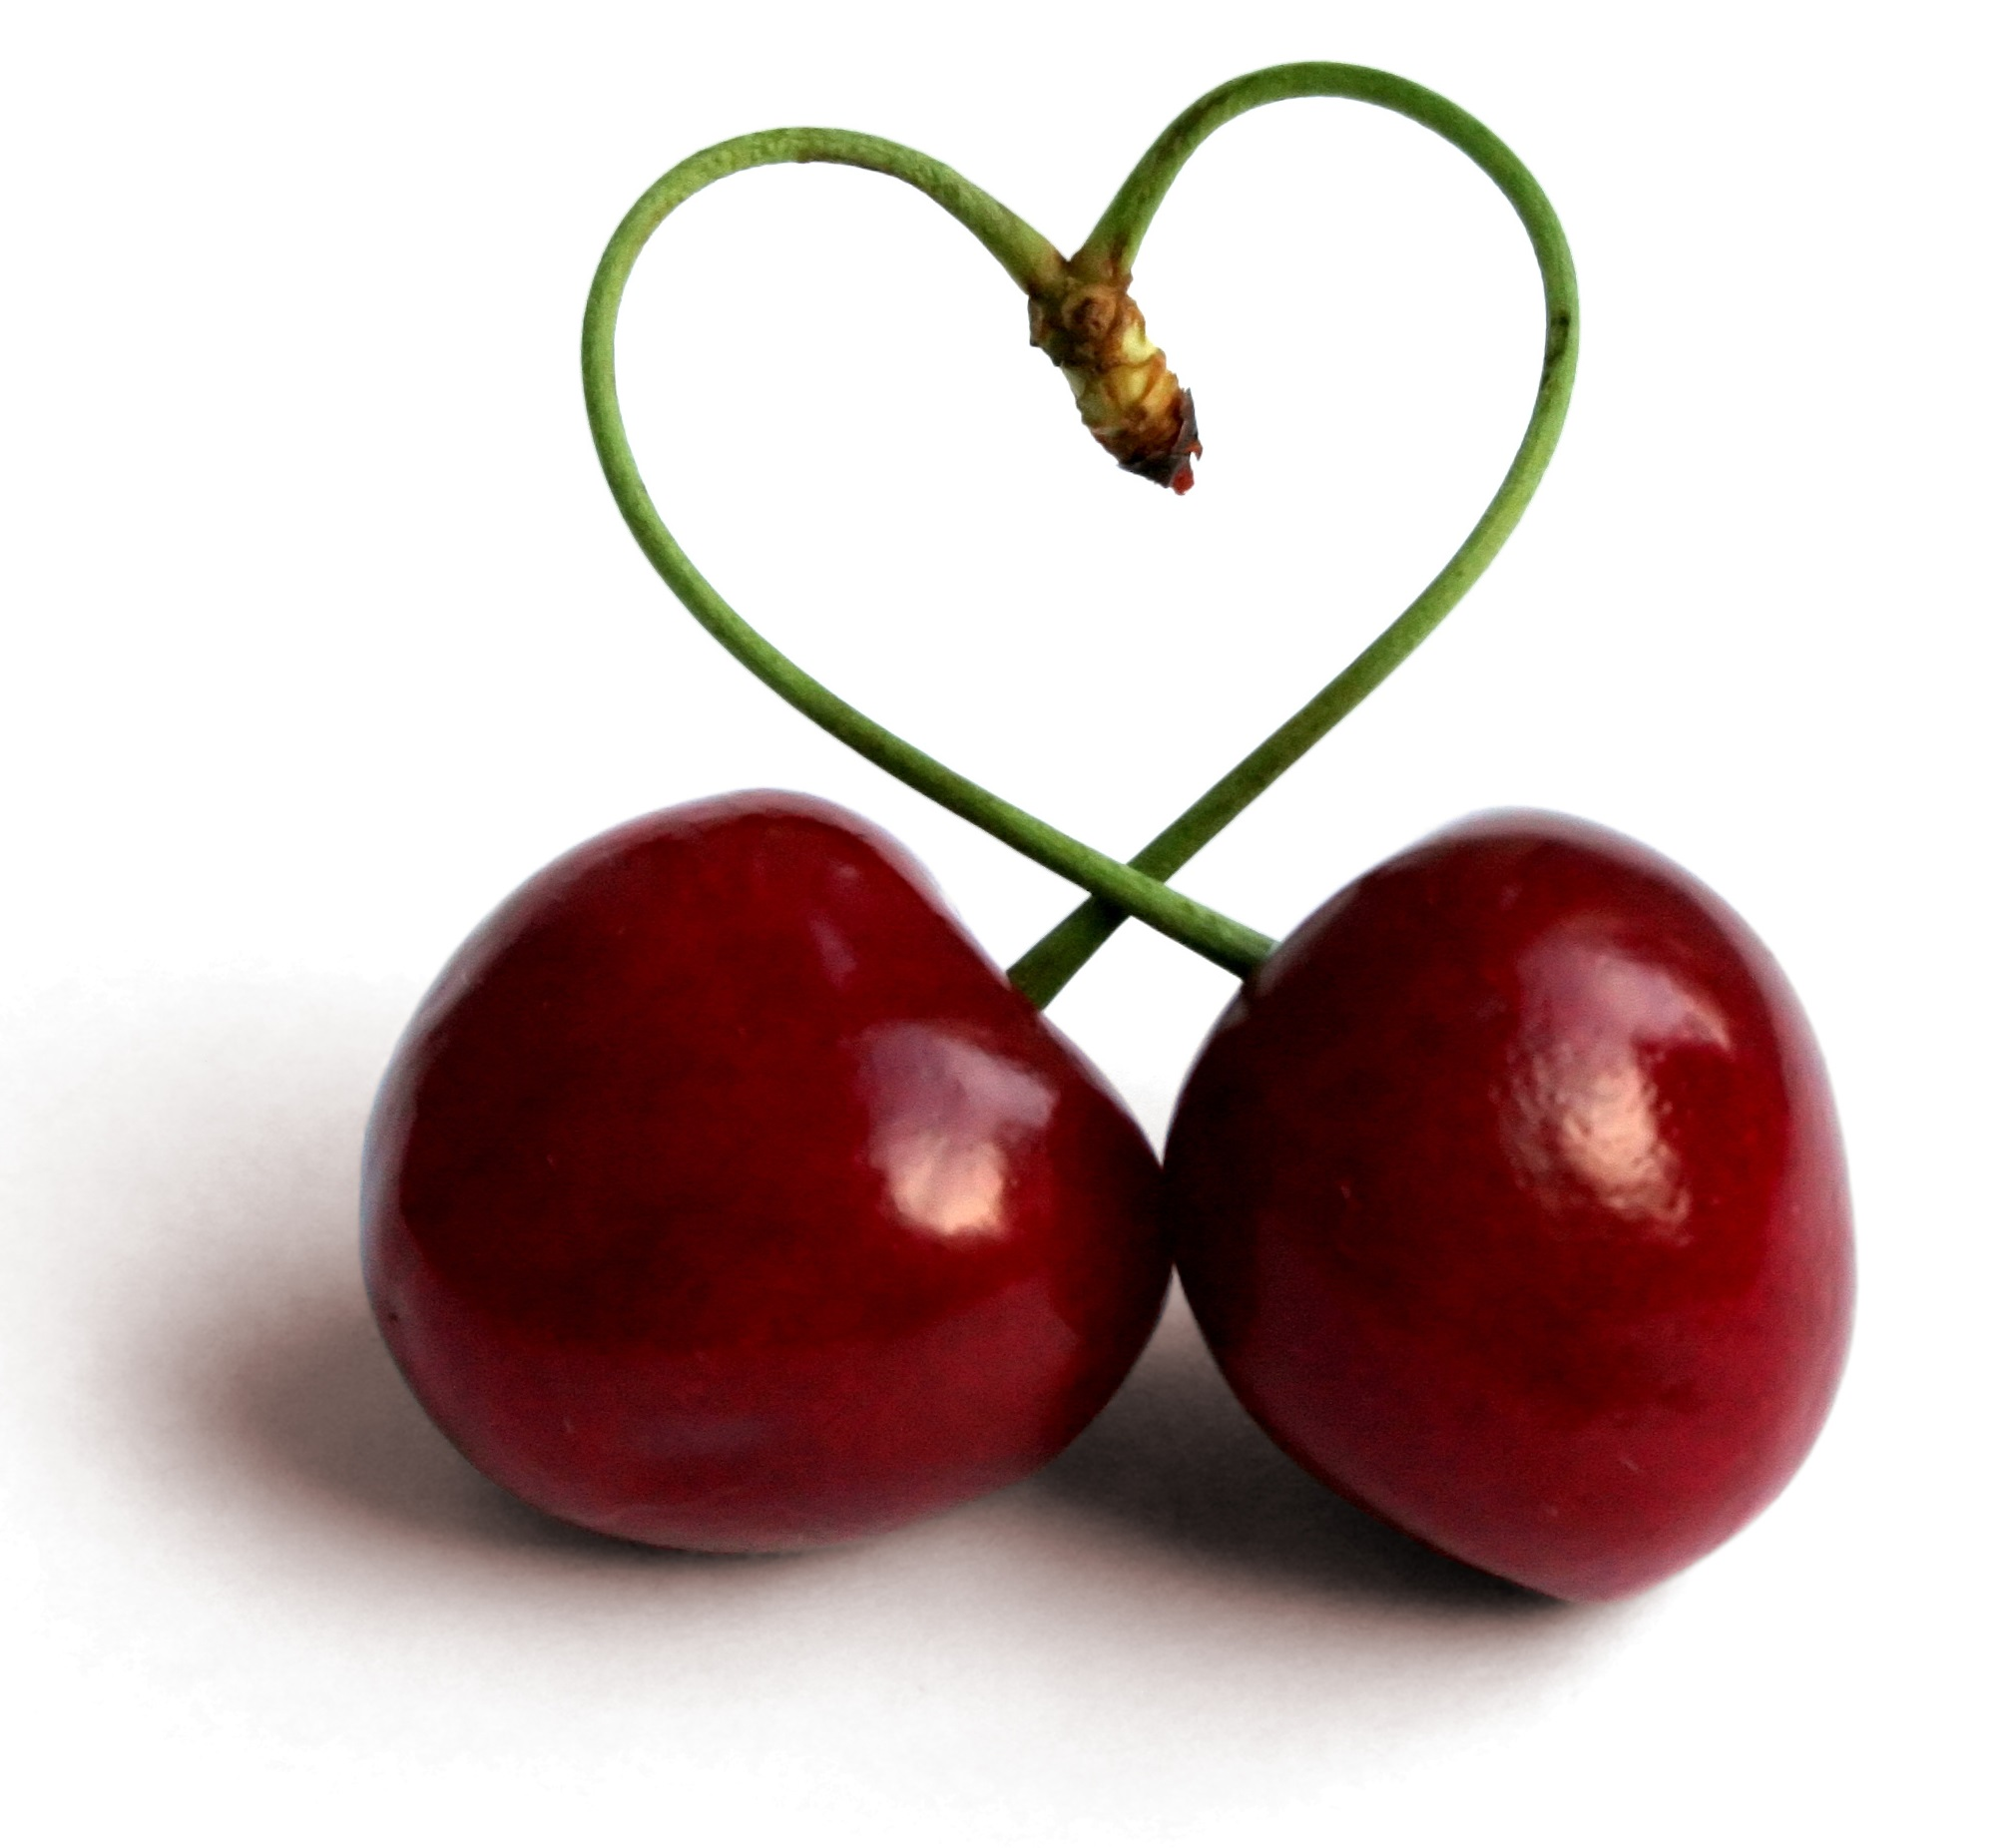 Cherry Heart Image 163.64 Kb